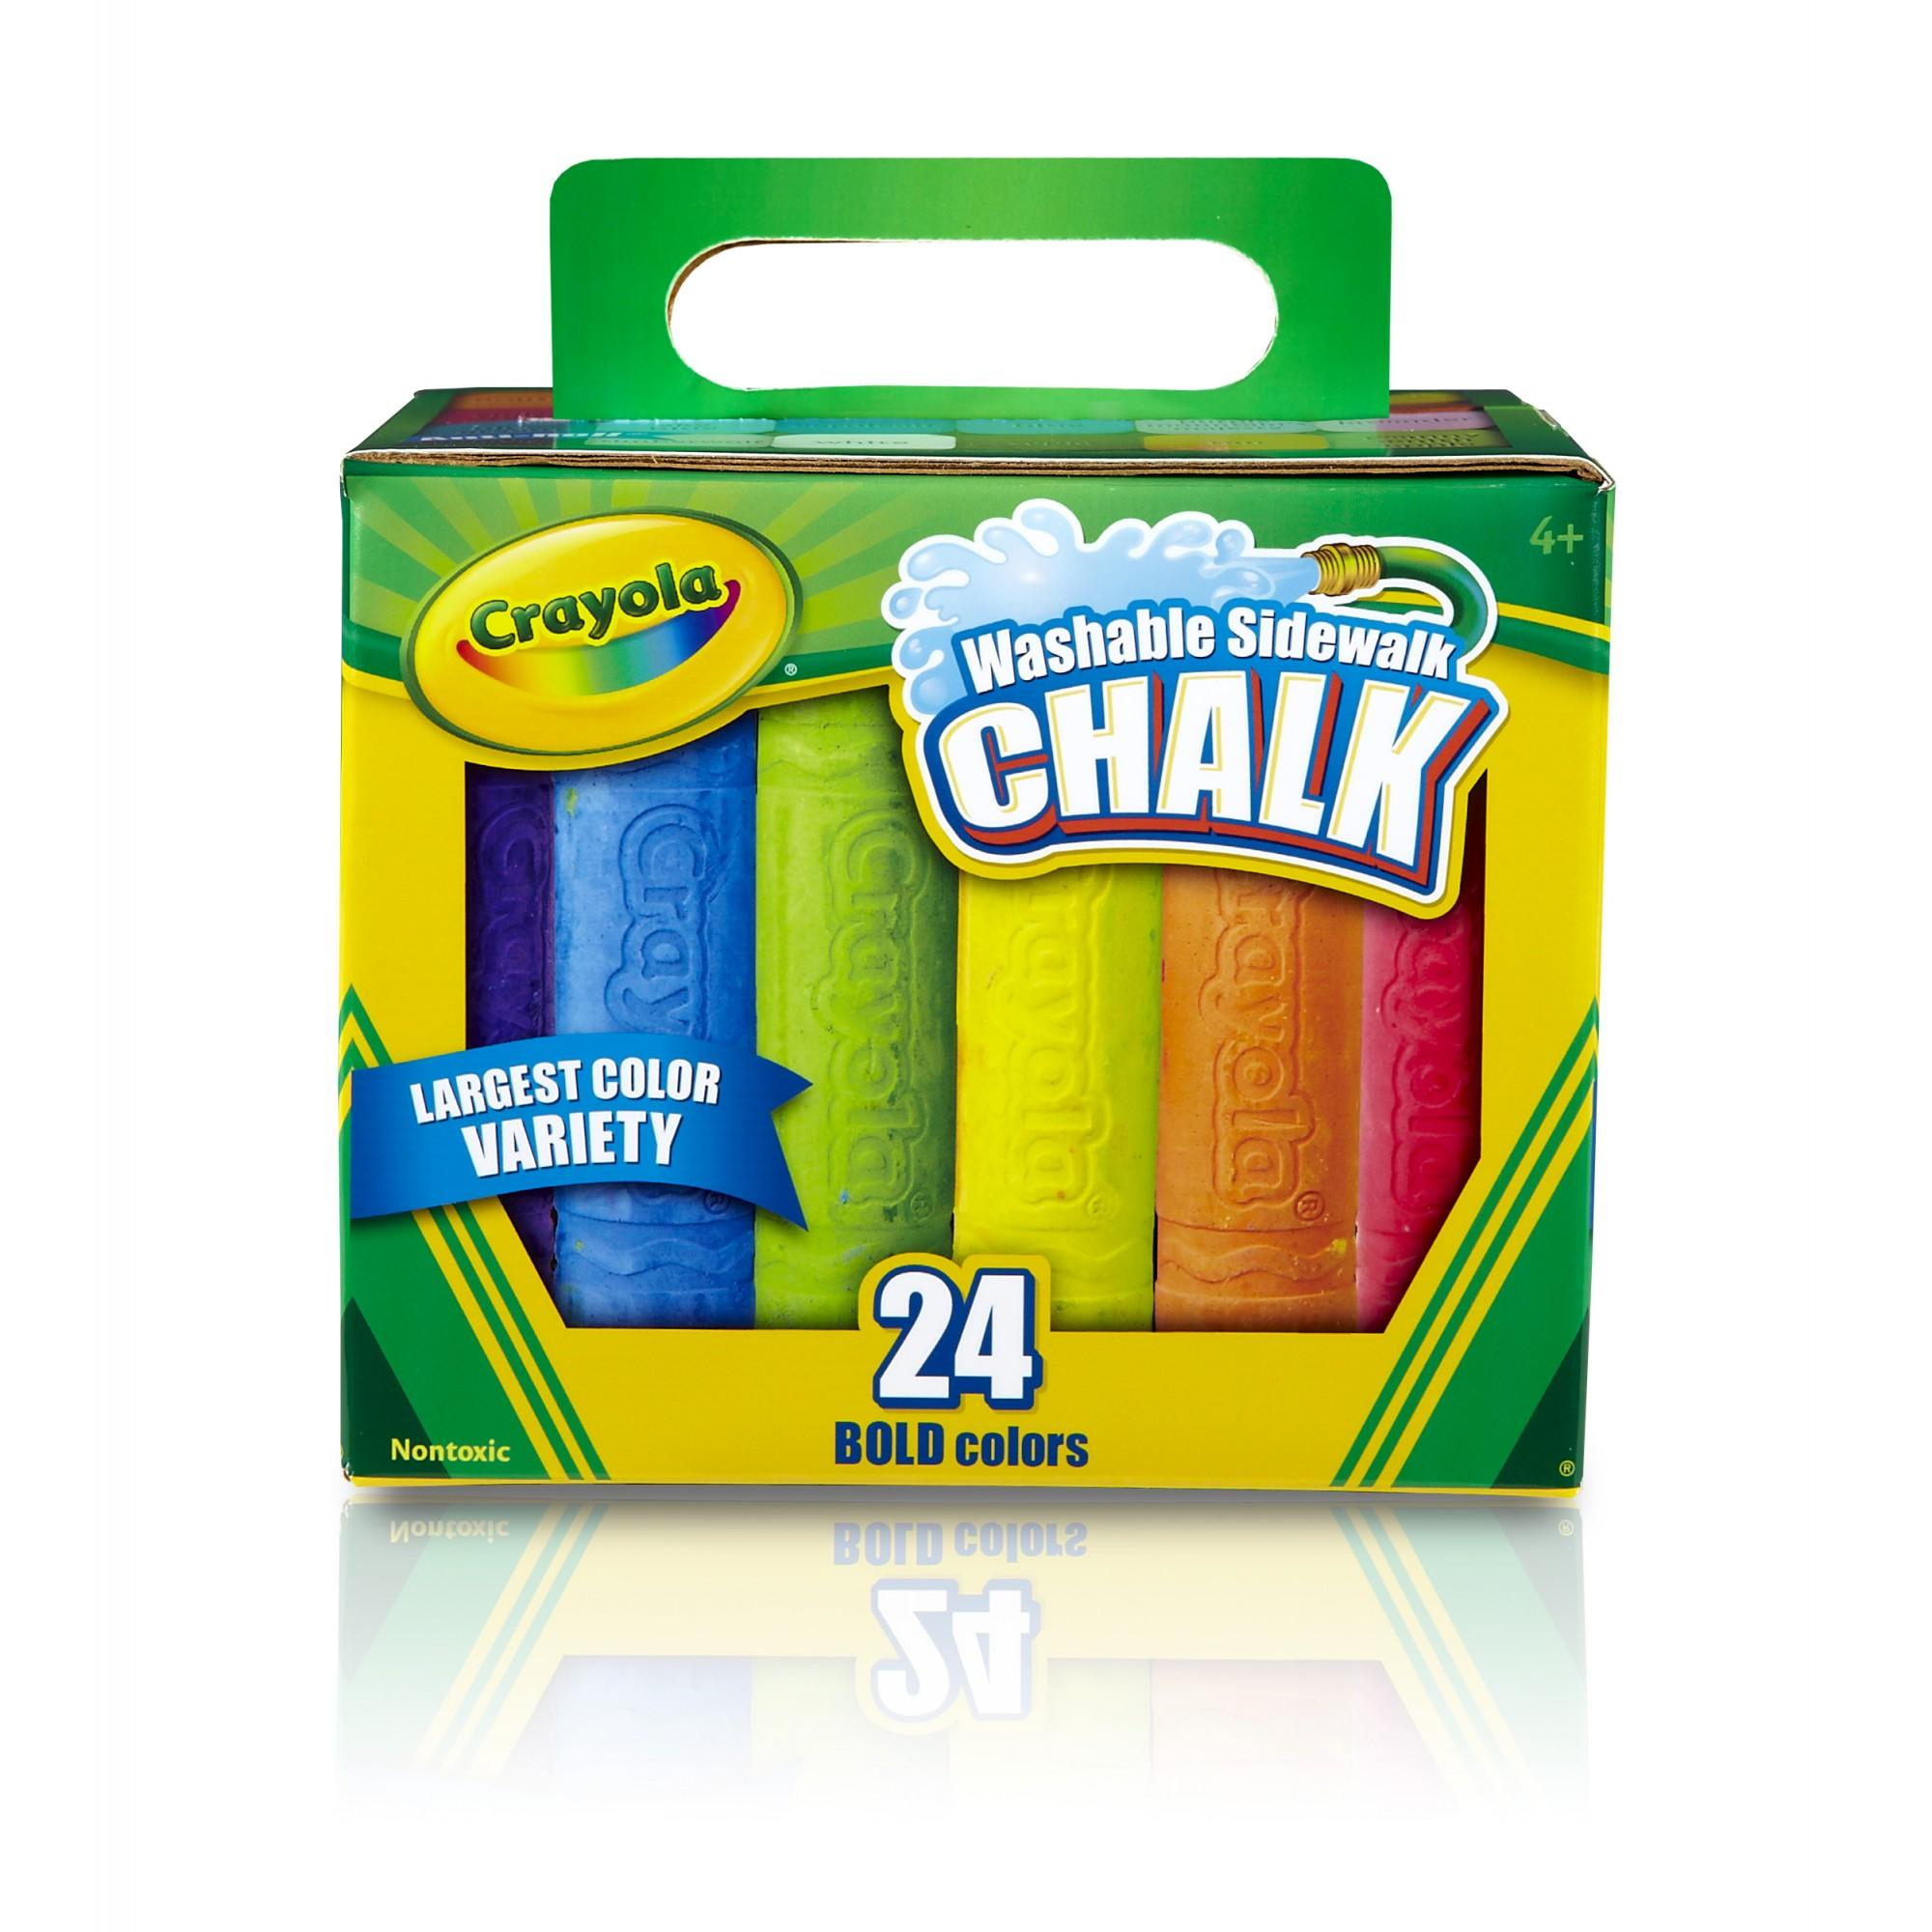 Crayola Washable Sidewalk Chalk In Assorted Colors, 24 Count